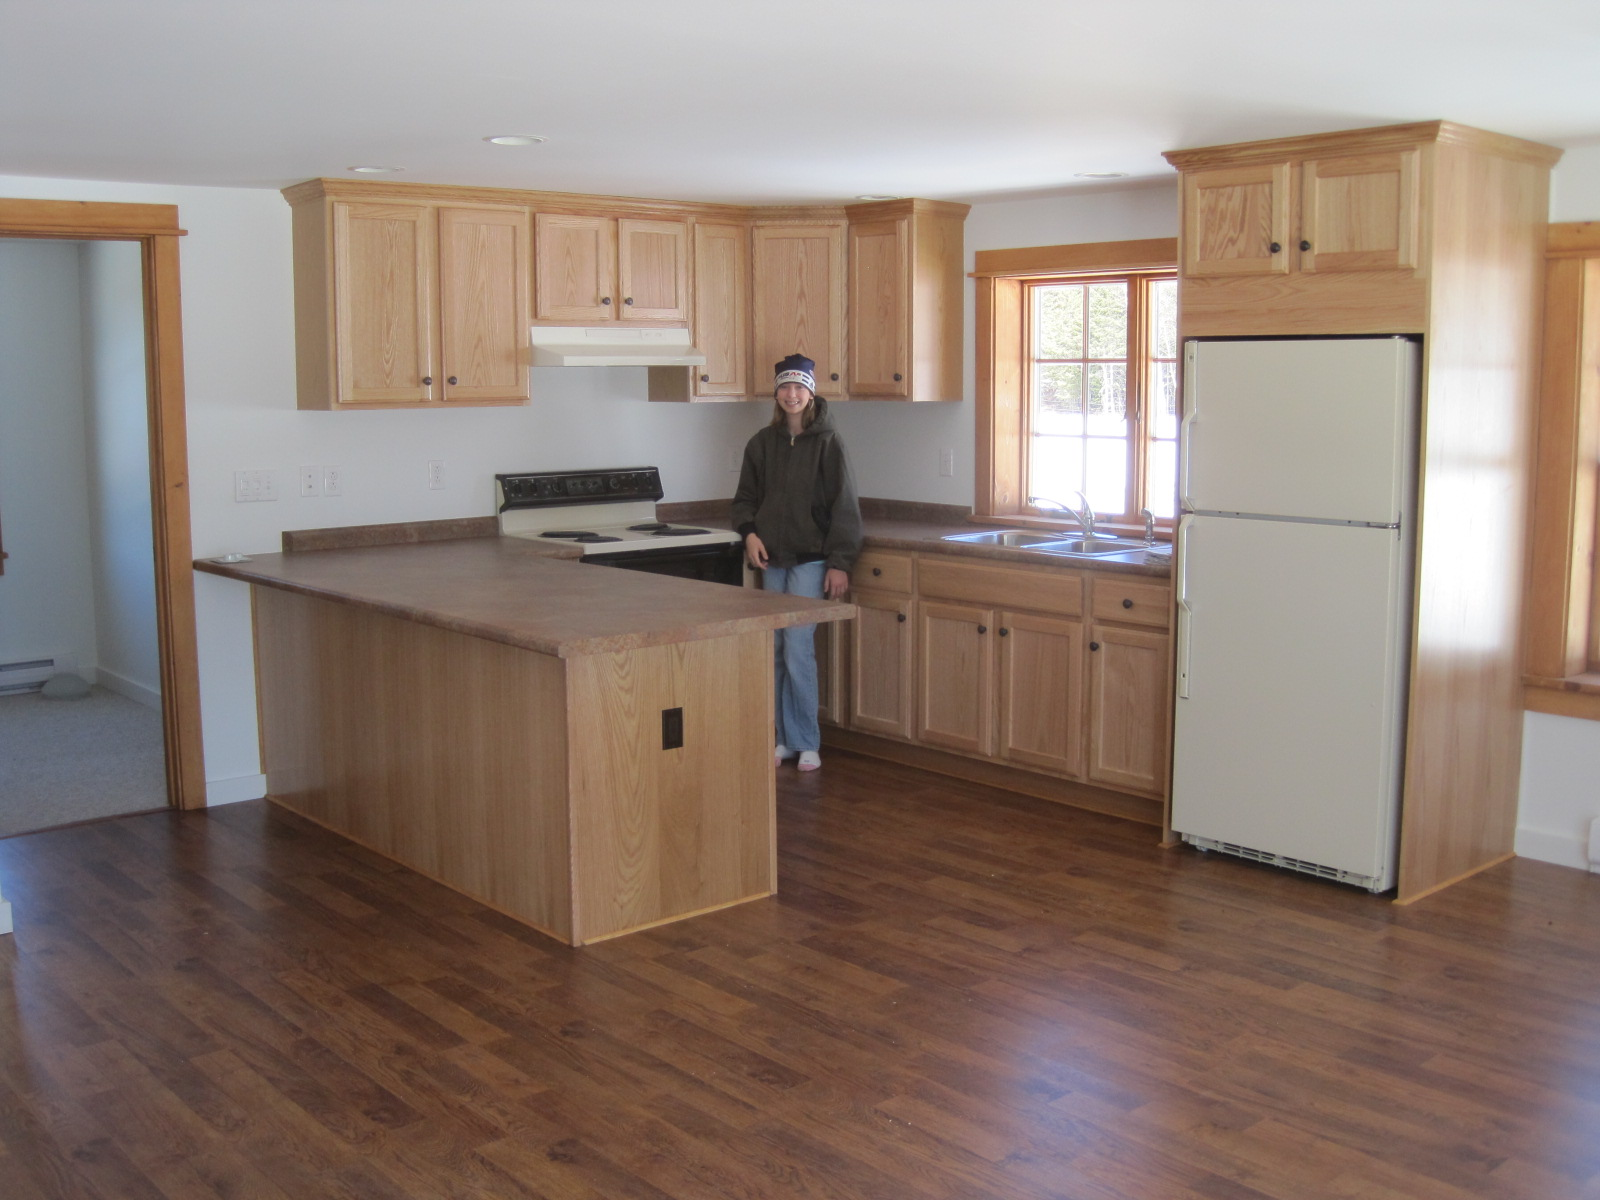 Laminate Flooring in Kitchen